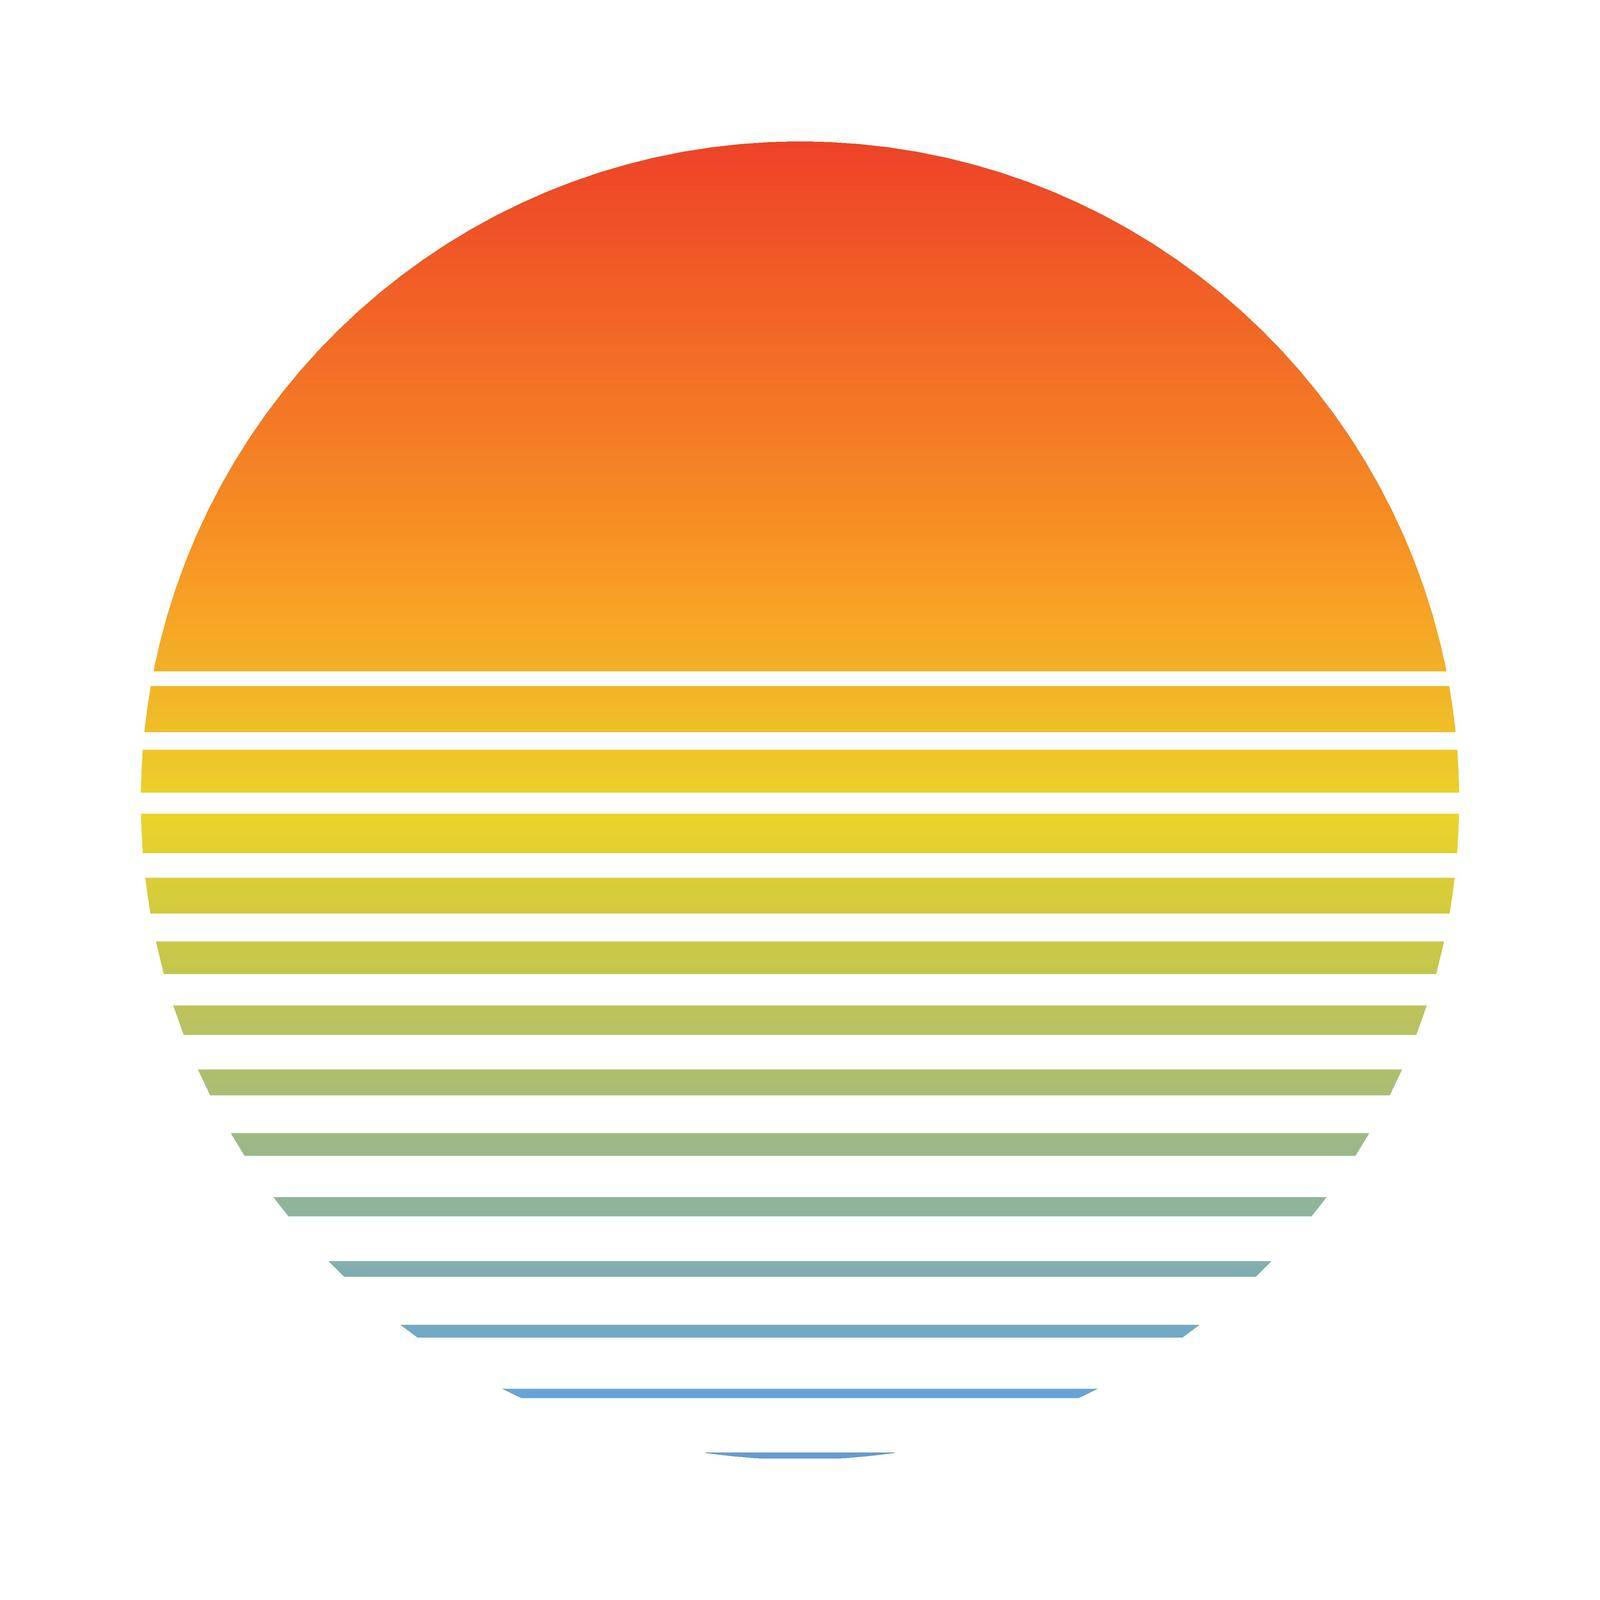 Retro sunset over the sea with gradient silhouette of sun and water. Vintage style summer logo icon style 80s 90s by koksikoks